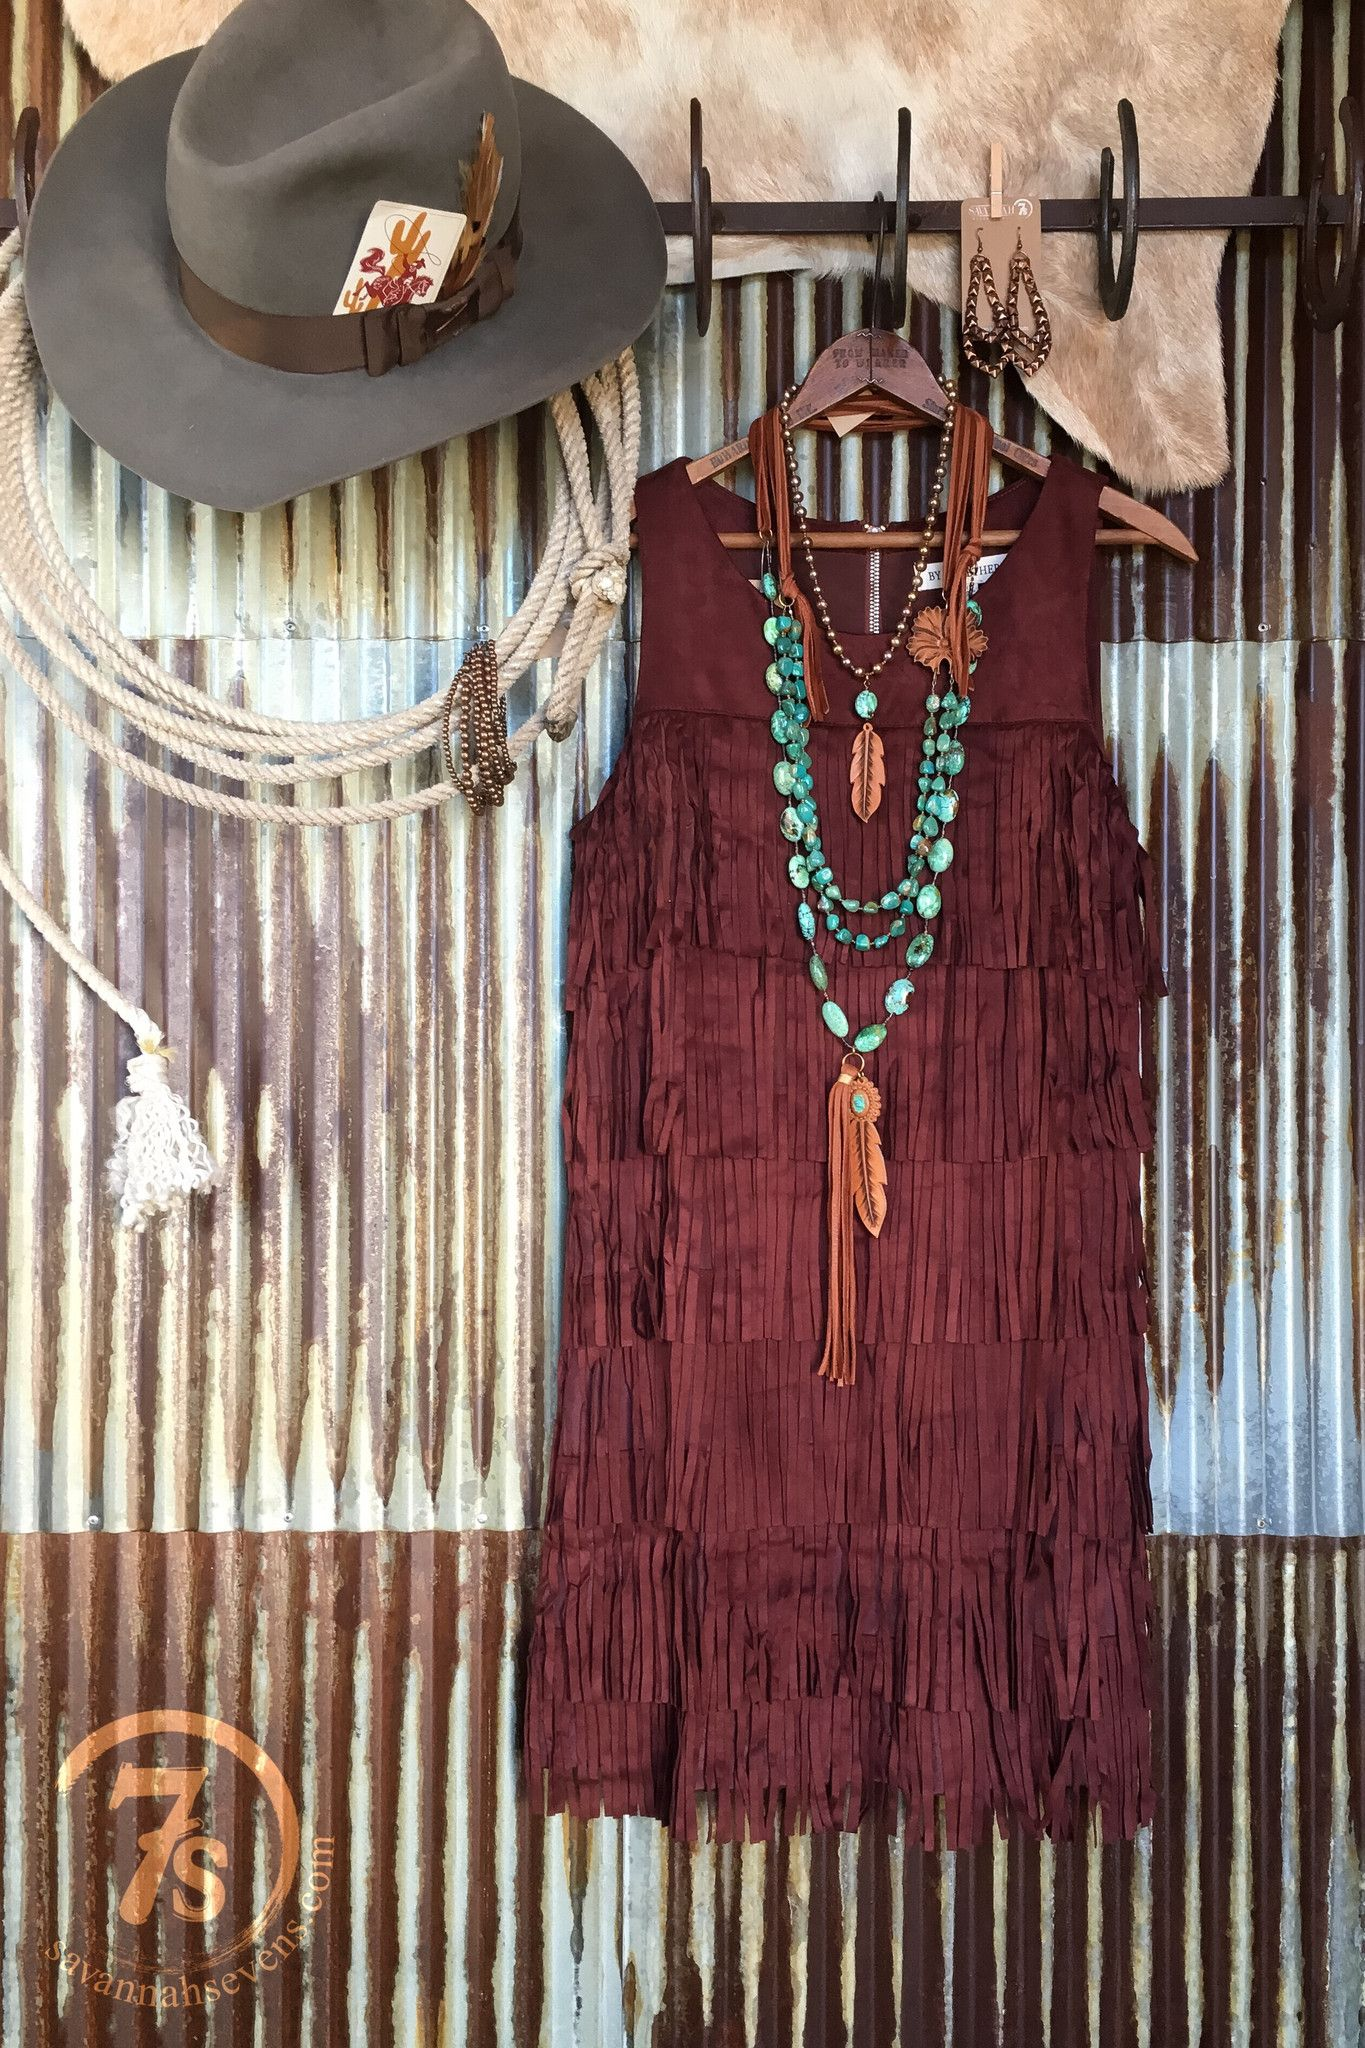 - Wine faux suede fringe dress - Gorgeous deep wine almost chestnut color - Layed fringe front - Sleeveless - Zipper back - Fully lined - Nice flattering fit without being snug anywhere - Runs true to